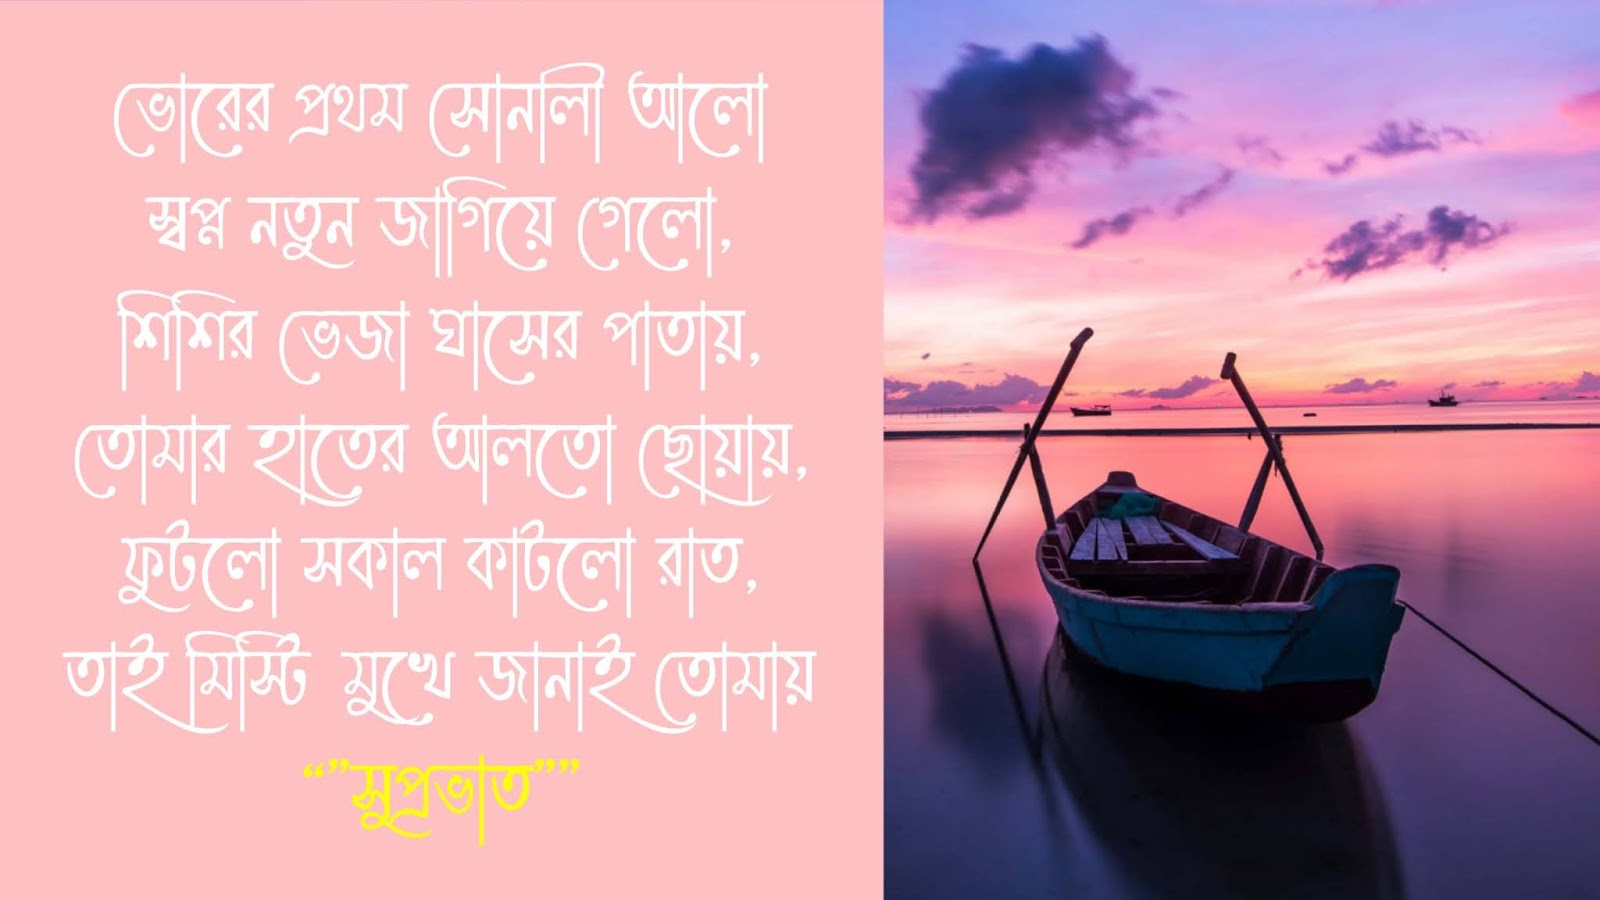 good morning quotes in bengali language